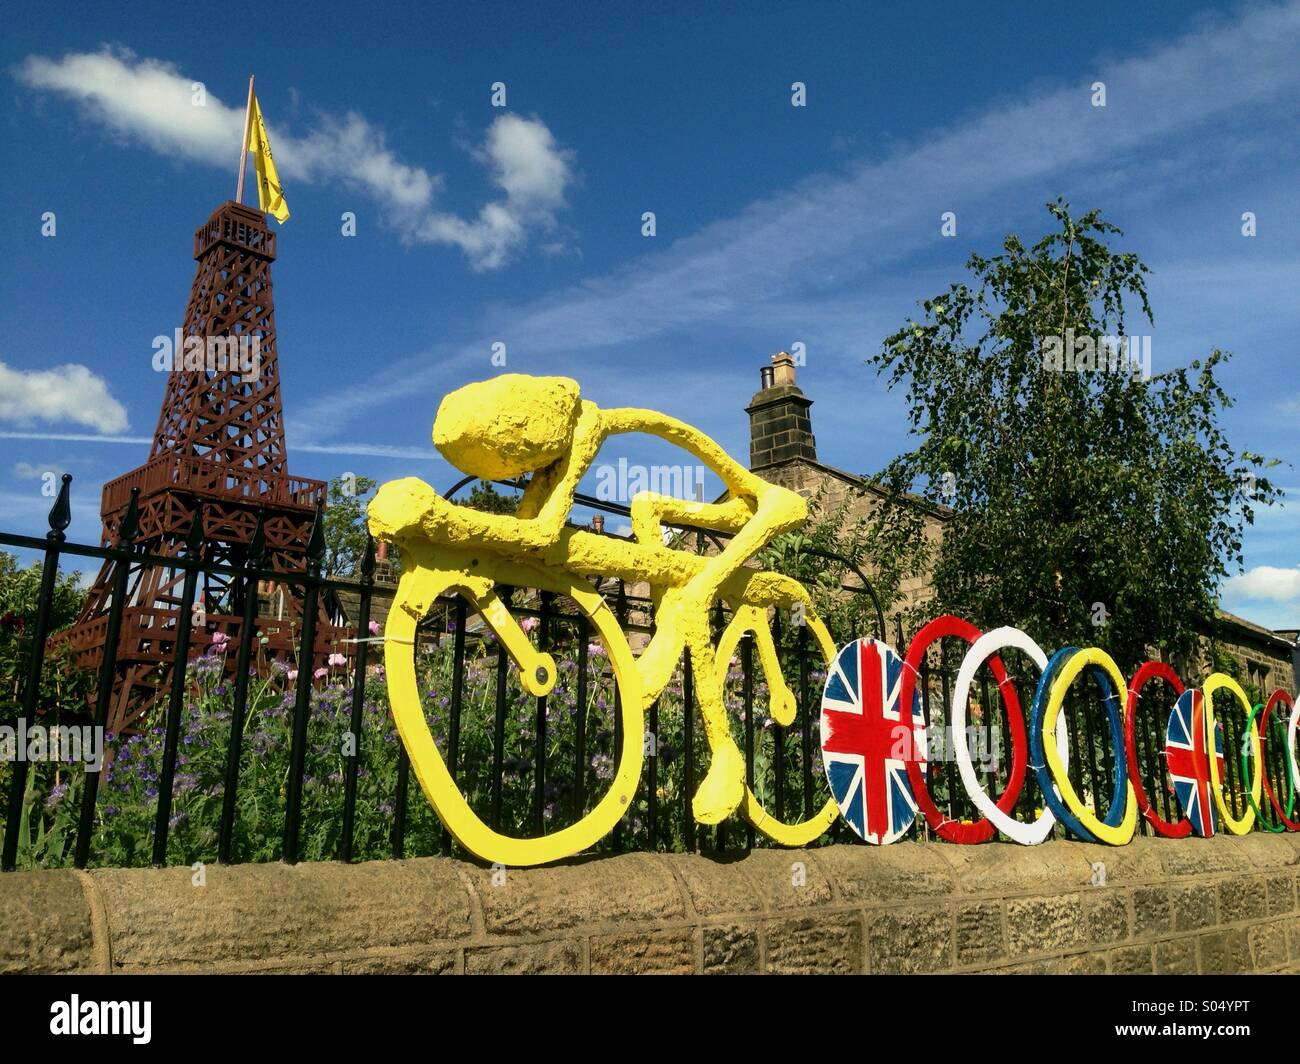 Eiffel Tower and Yellow Bicycle made to celebrate the Tour de France in Burley-in-Wharfdale, Yorkshire by the Guiding Stock Photo